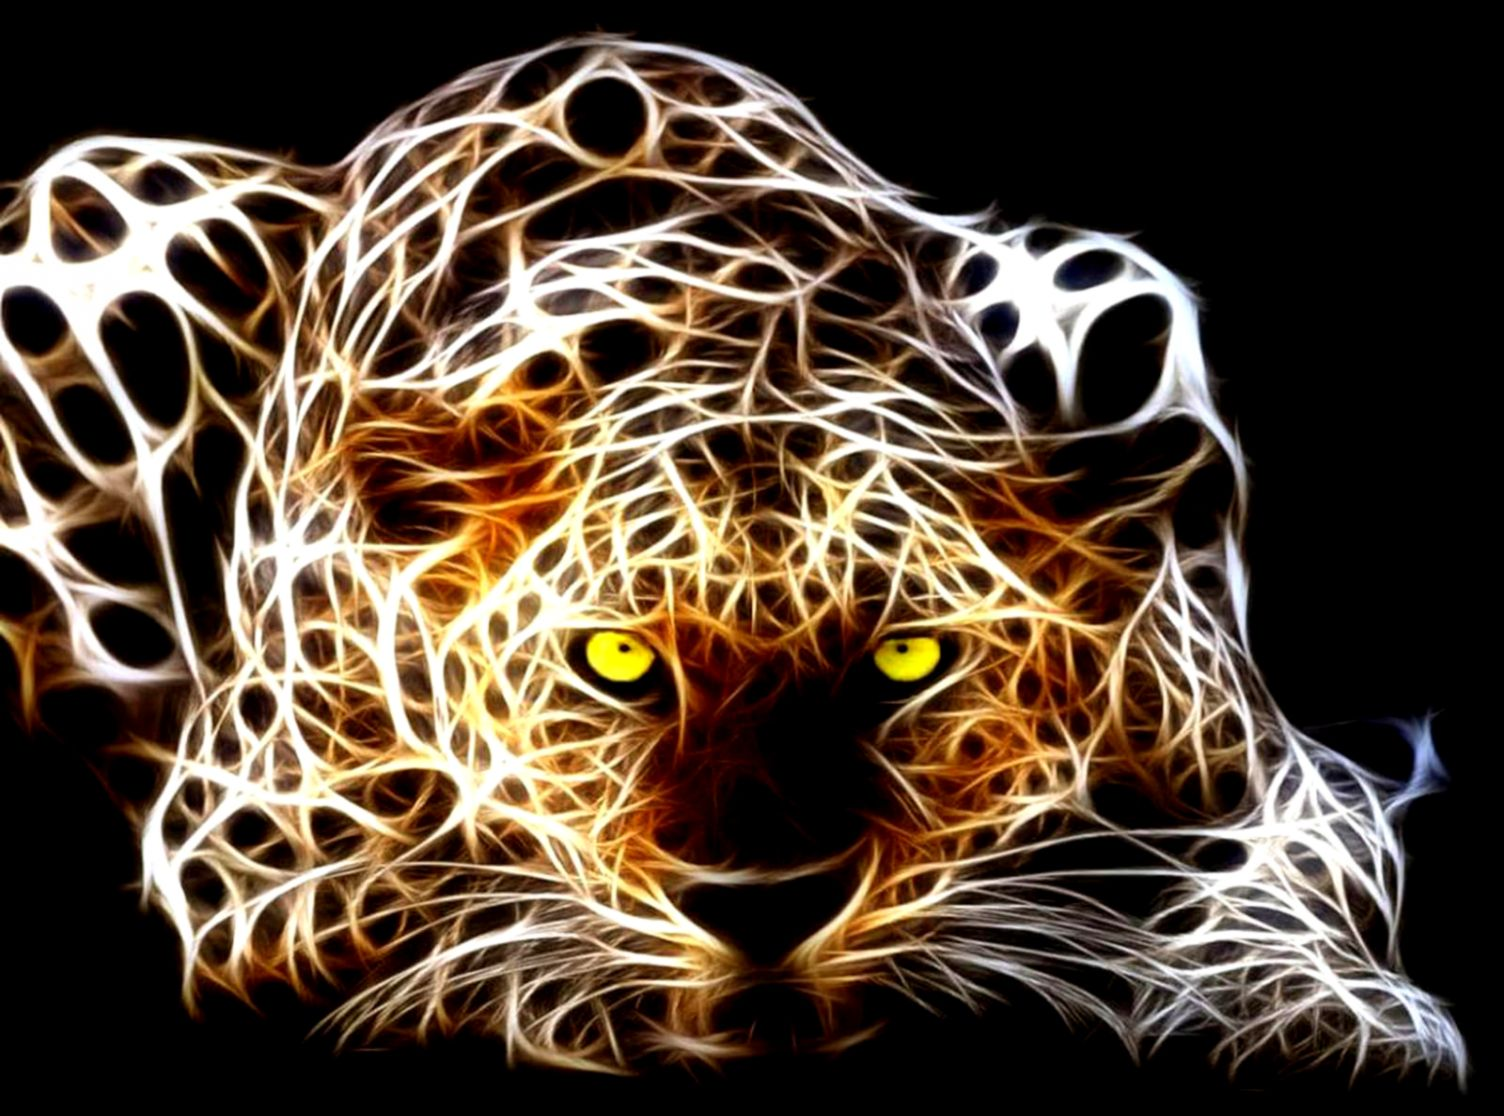 Abstract animal photography wallpapers gallery - 3d animal wallpaper ...